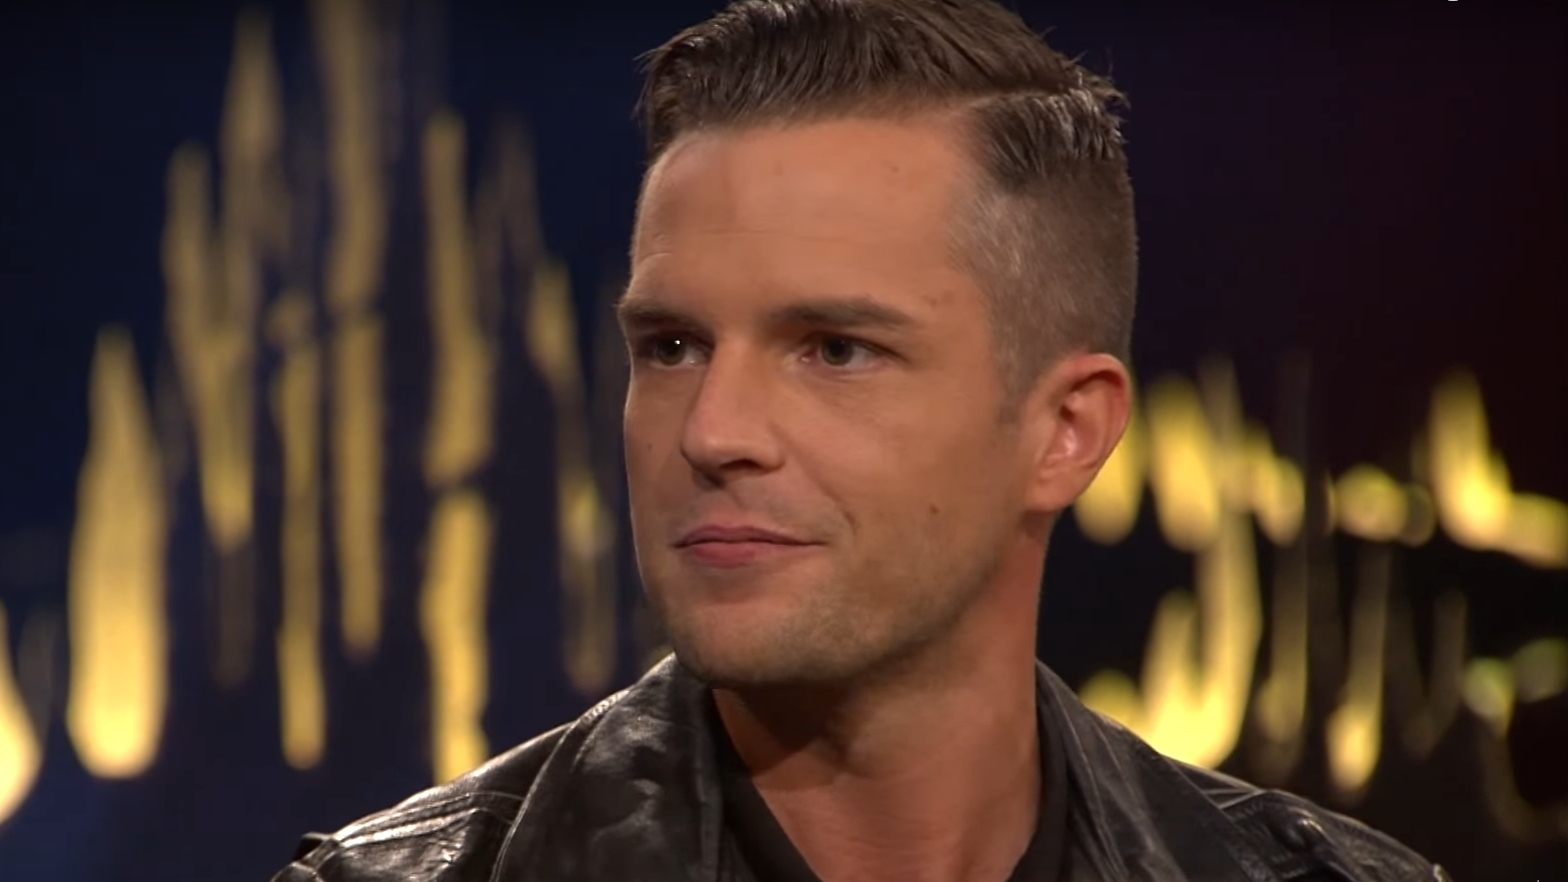 Brandon Flowers Defends His Mormon Faith